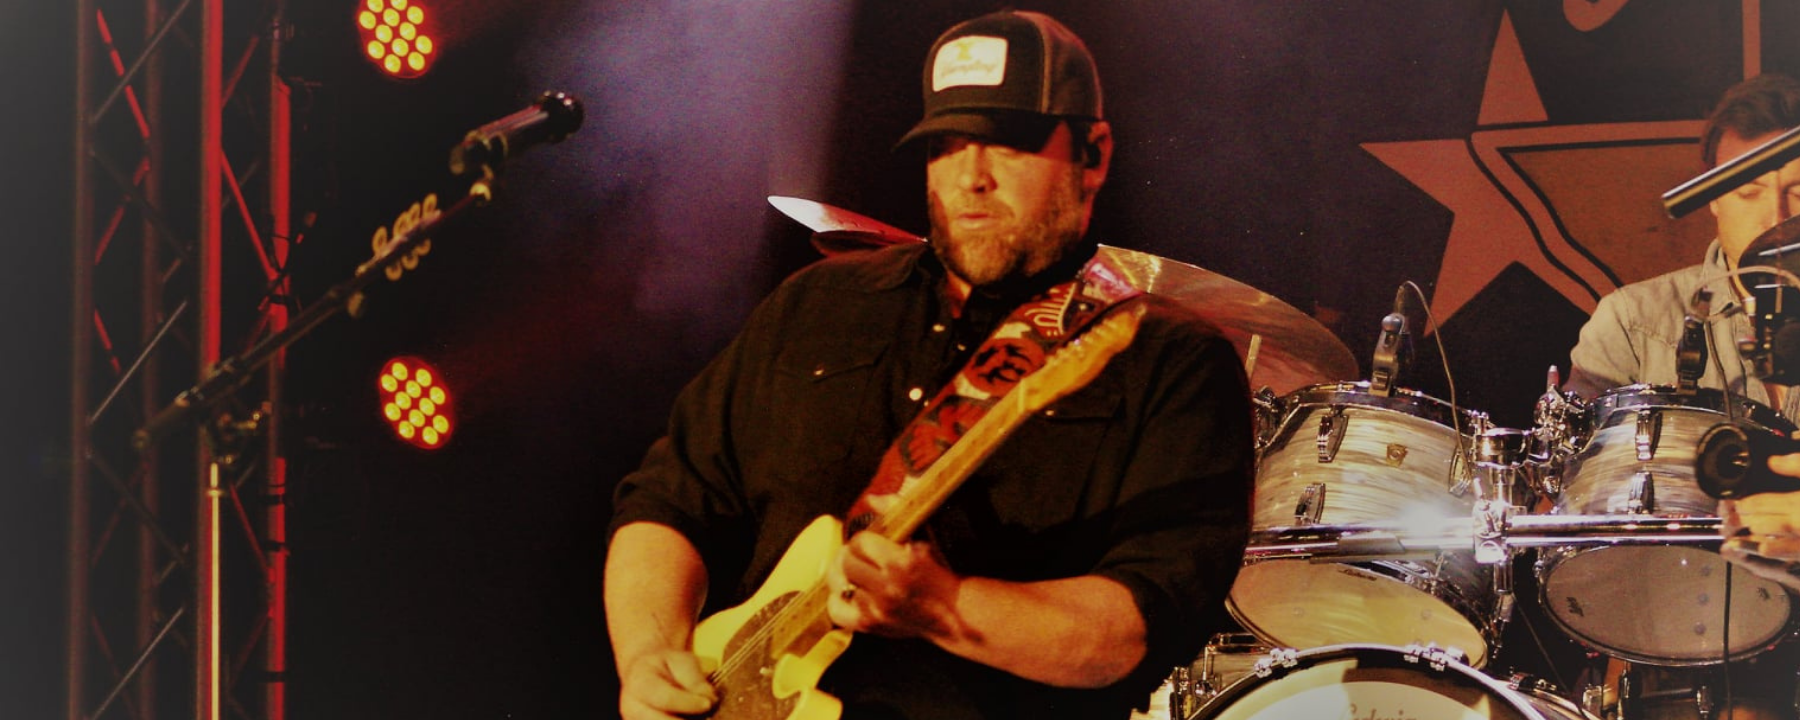 Lee Brice - Apr 17